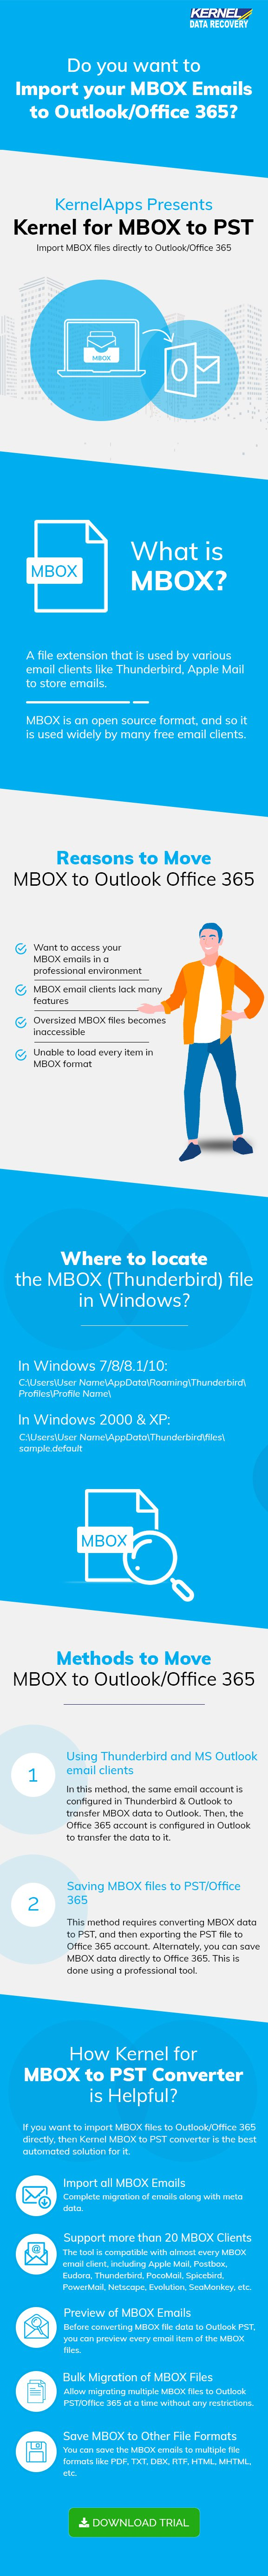 MBOX to Office 365 infographics